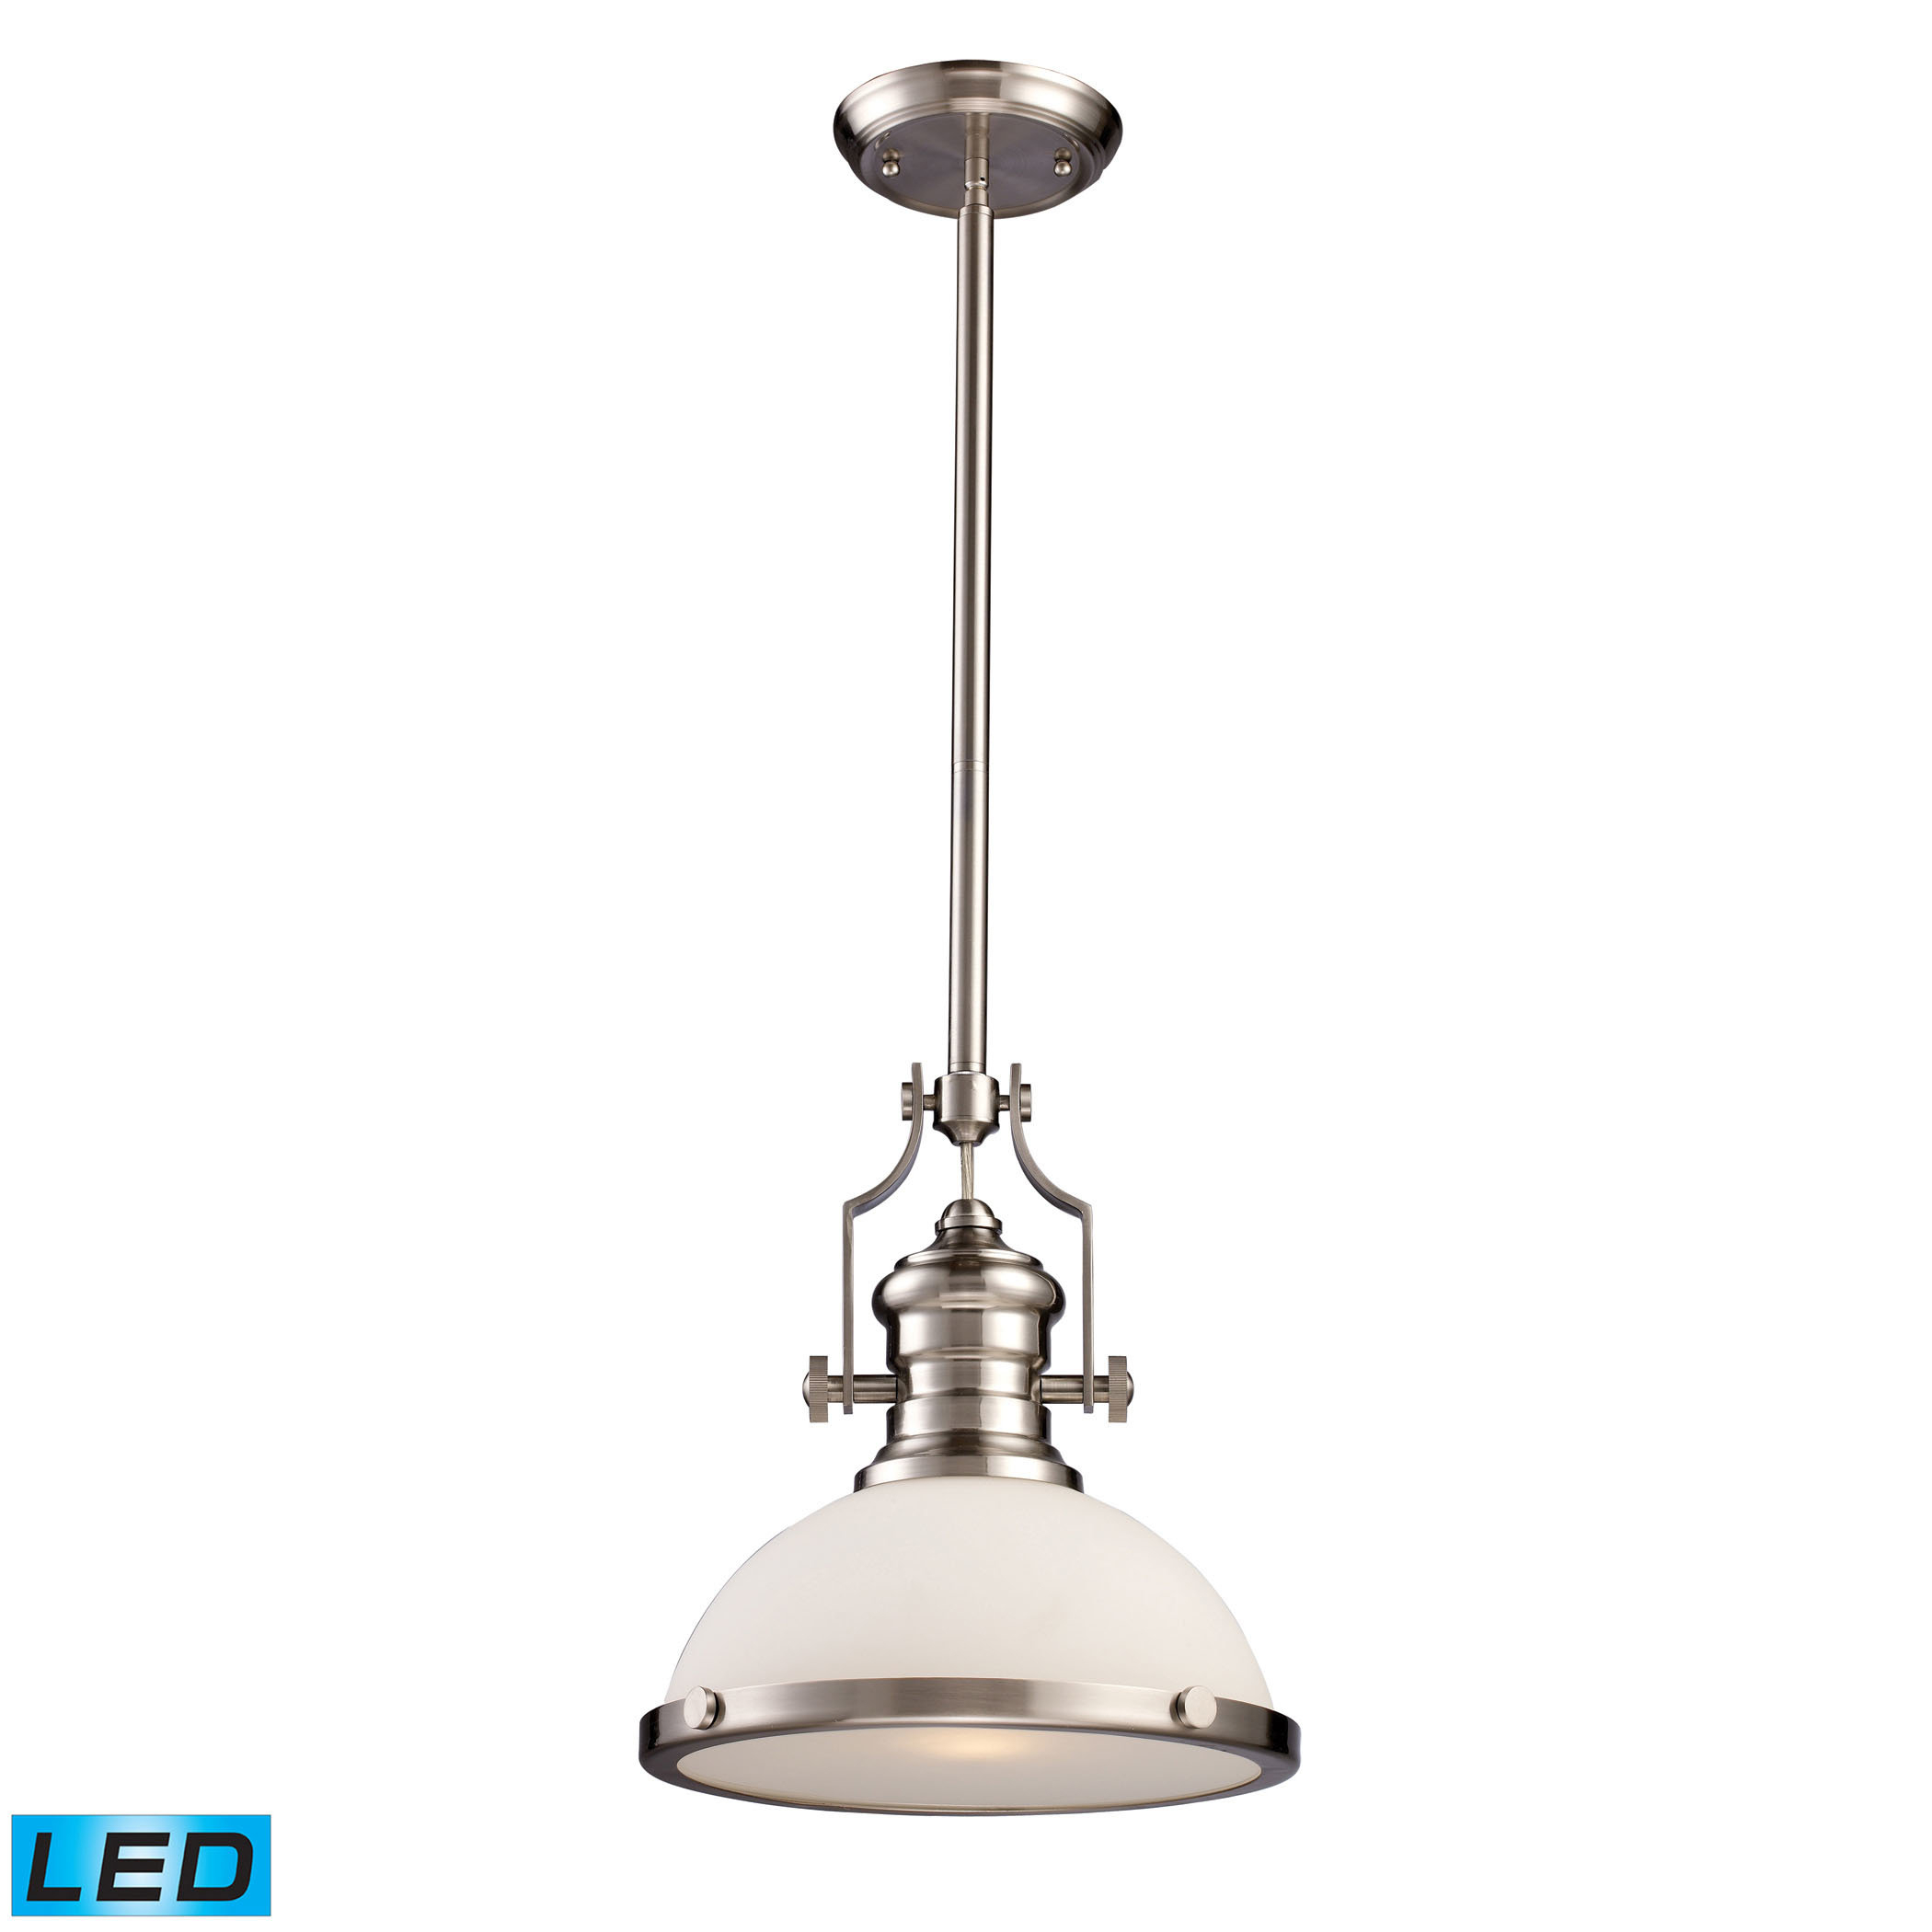 Priston 1-Light Single Dome Pendant within 1-Light Single Dome Pendants (Image 23 of 30)